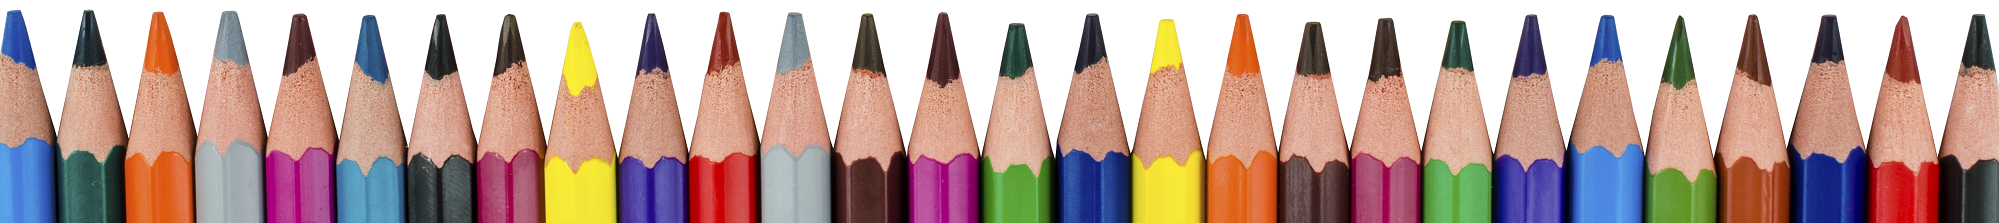 Color-pencils.png